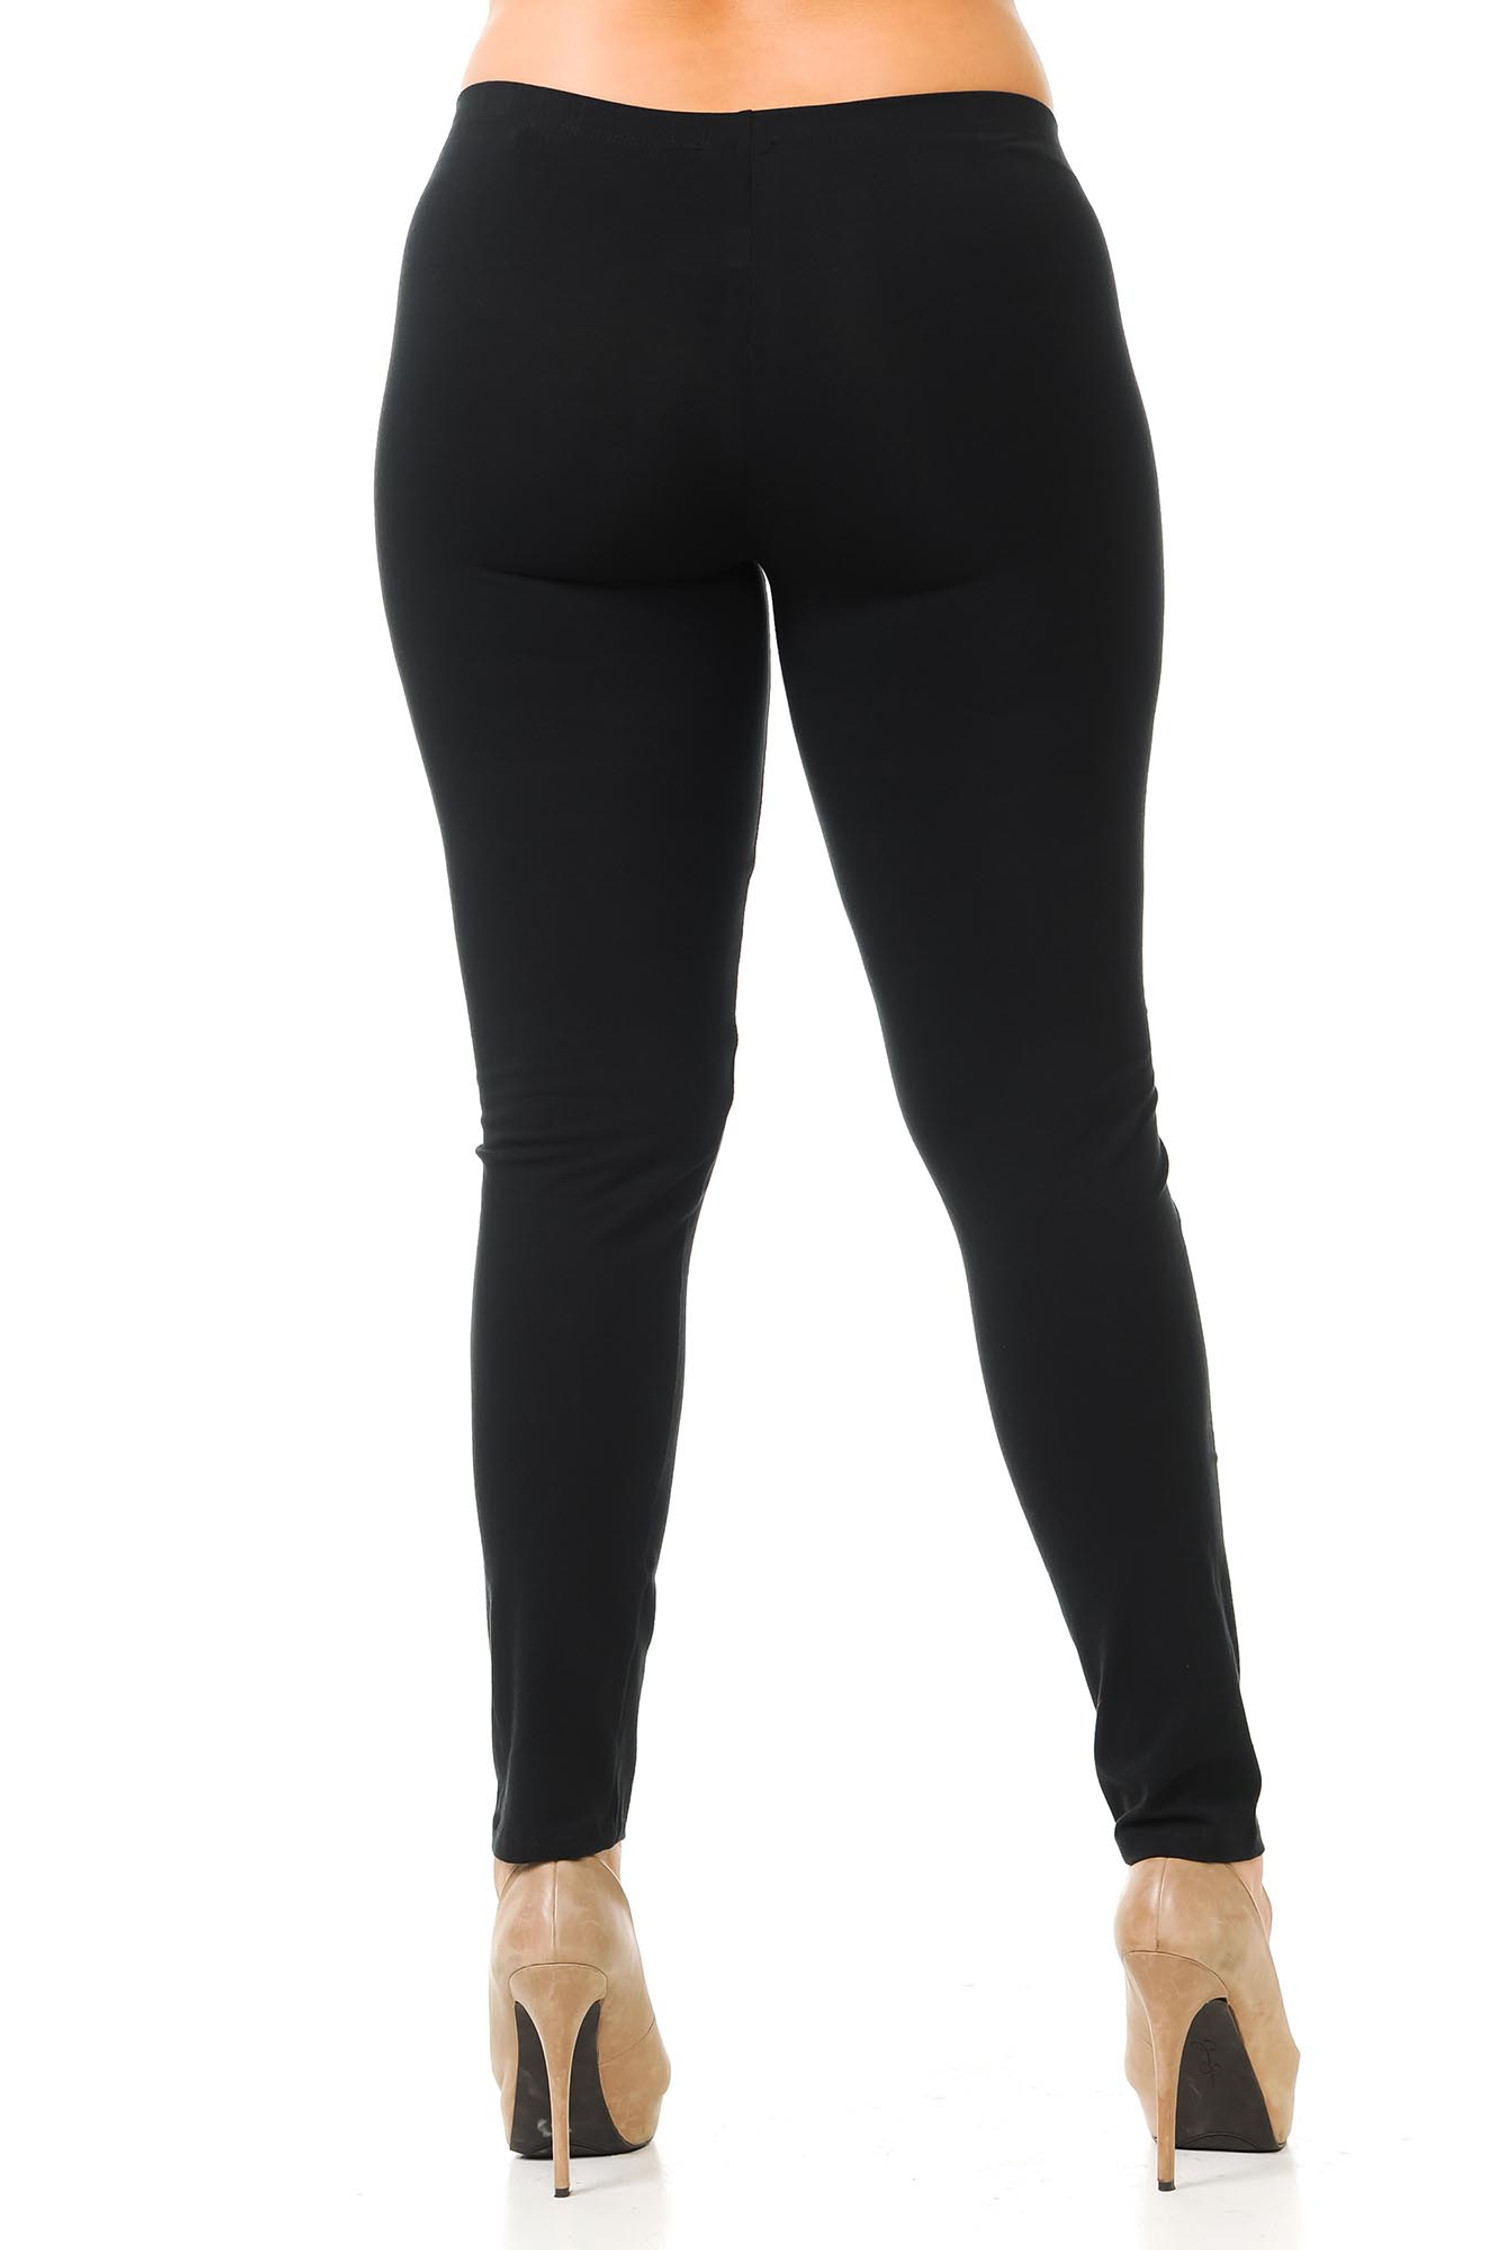 Rear view image of Black USA Cotton Full Length Leggings - Plus Size